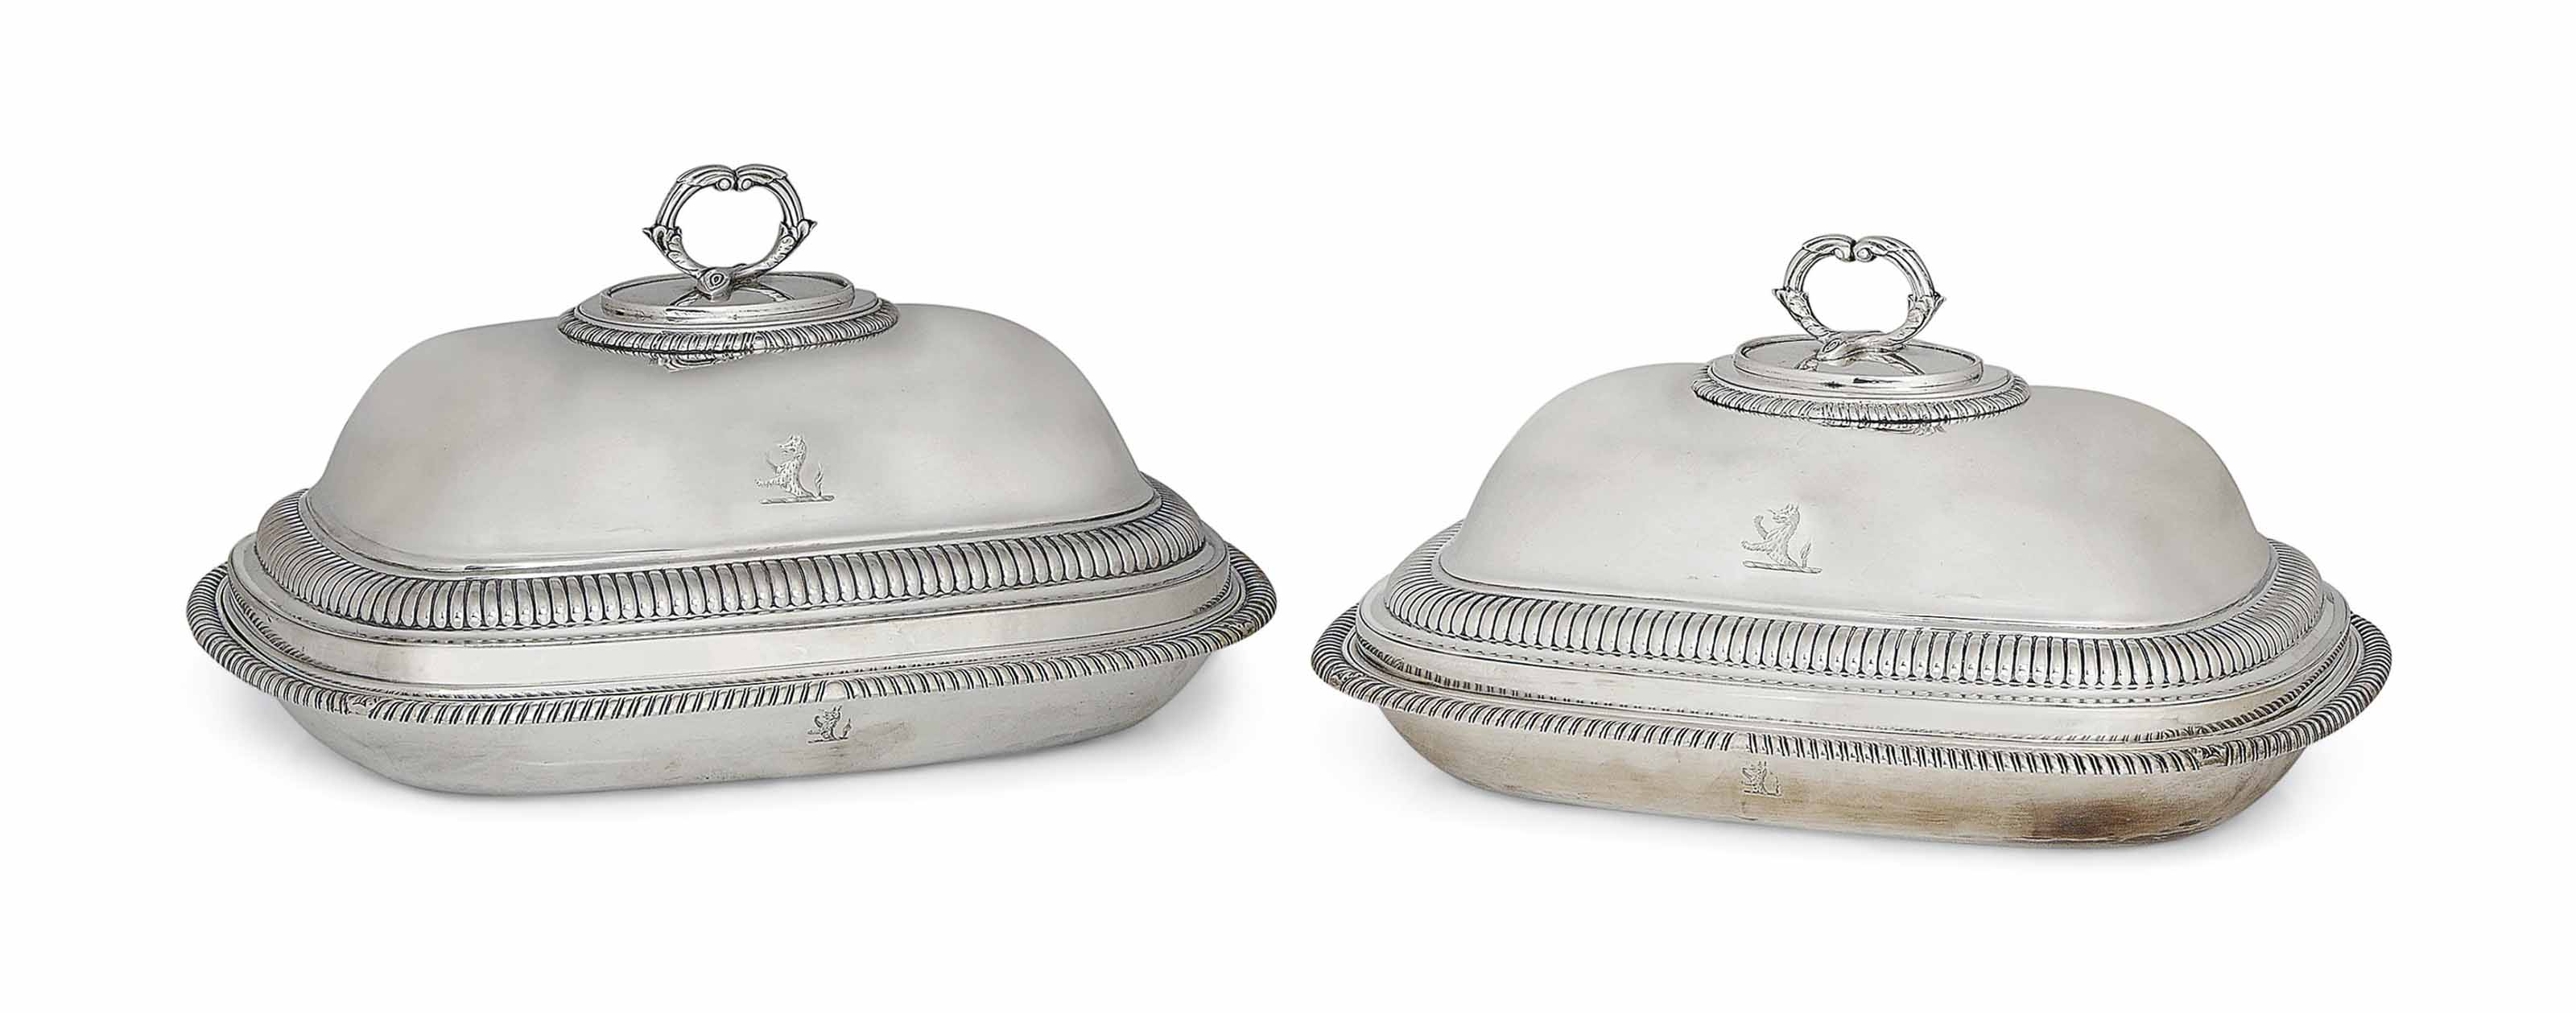 A MATCHED PAIR OF GEORGE III S